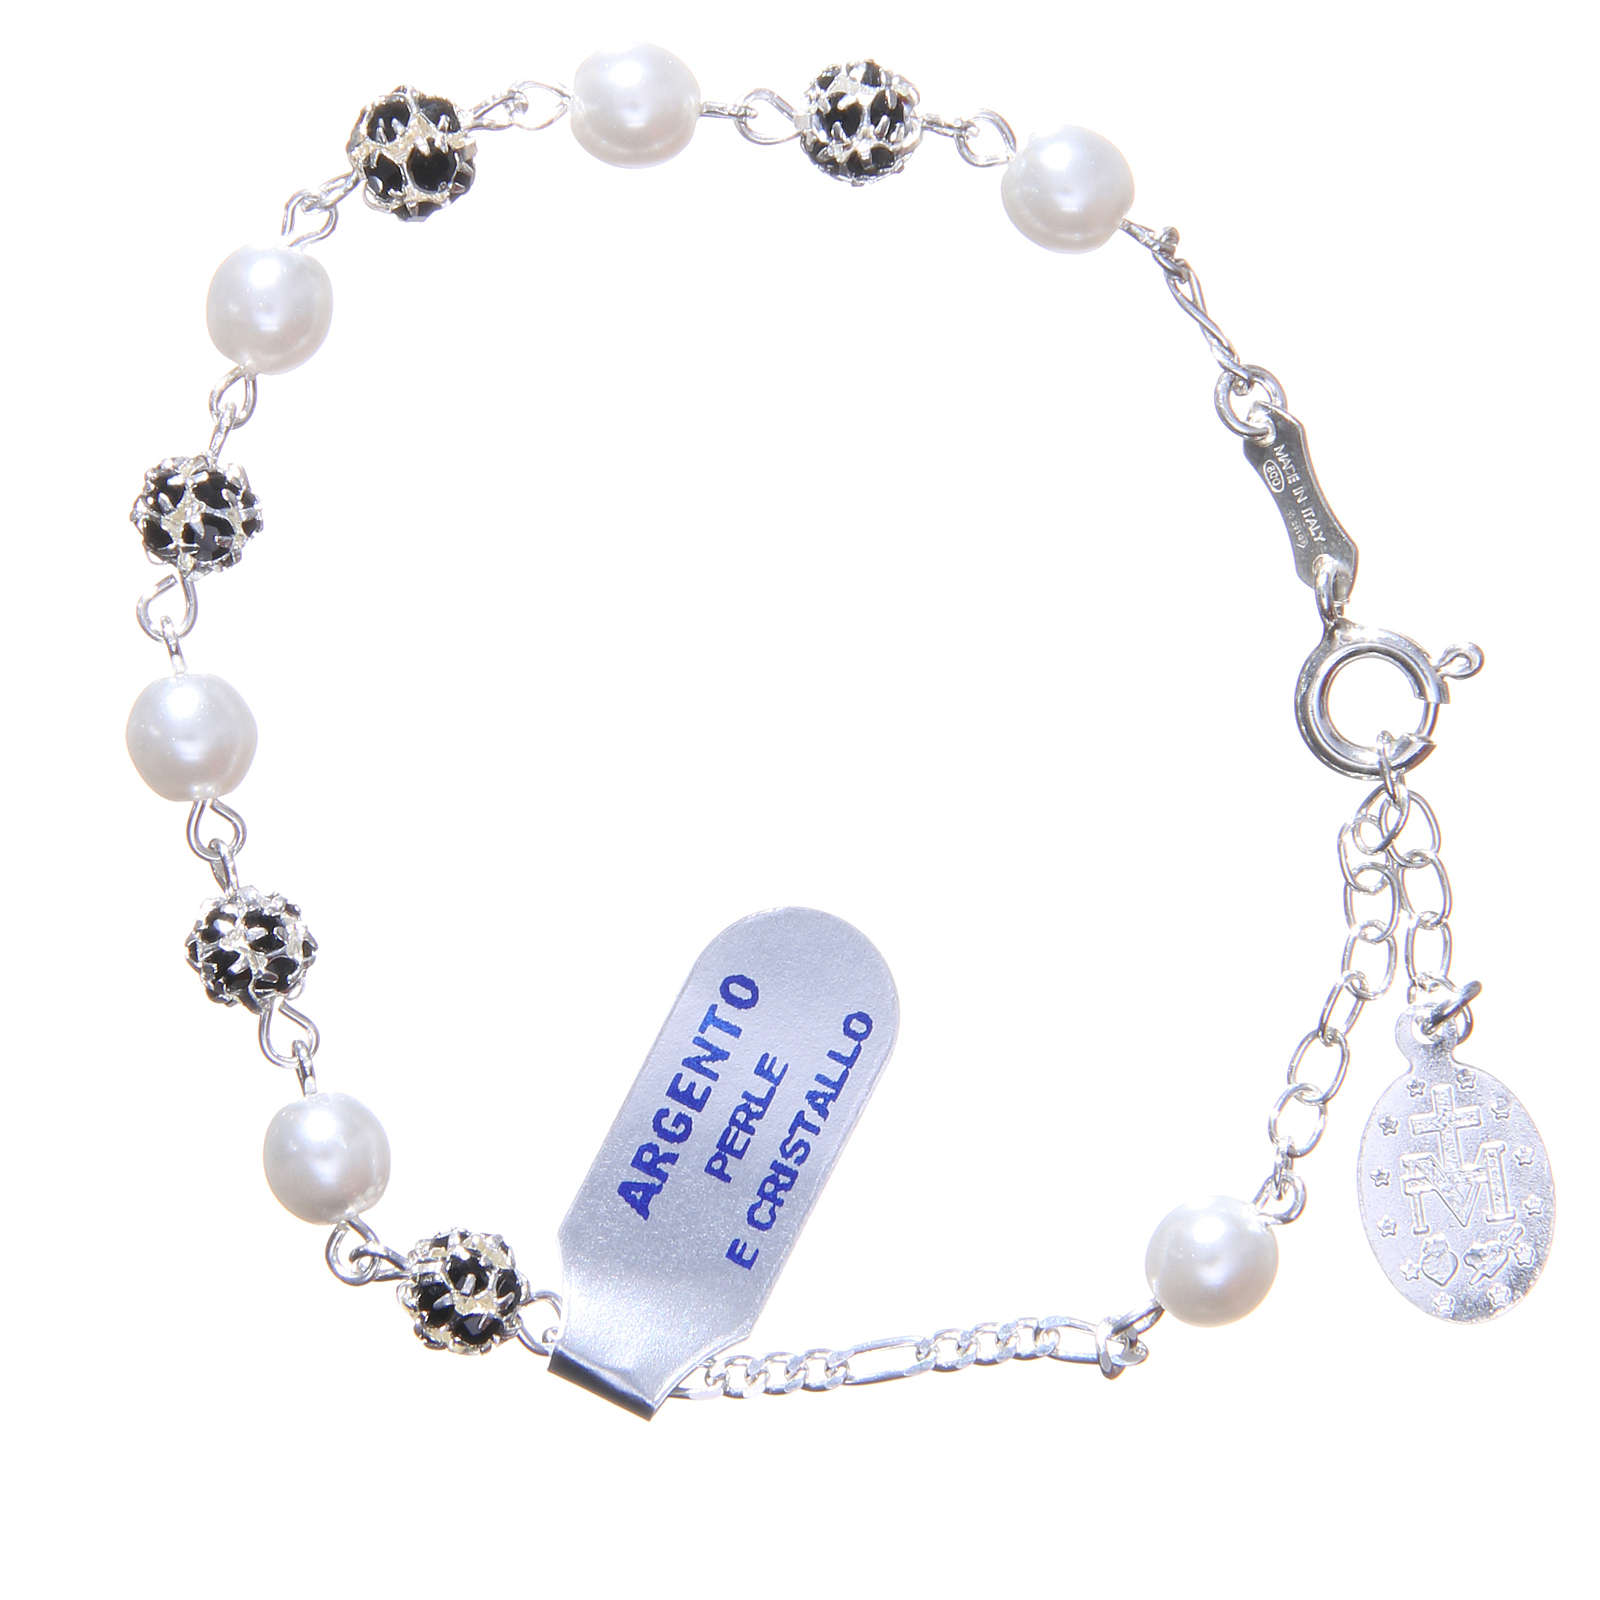 Rosary bracelet in silver with crystals and pearls 4